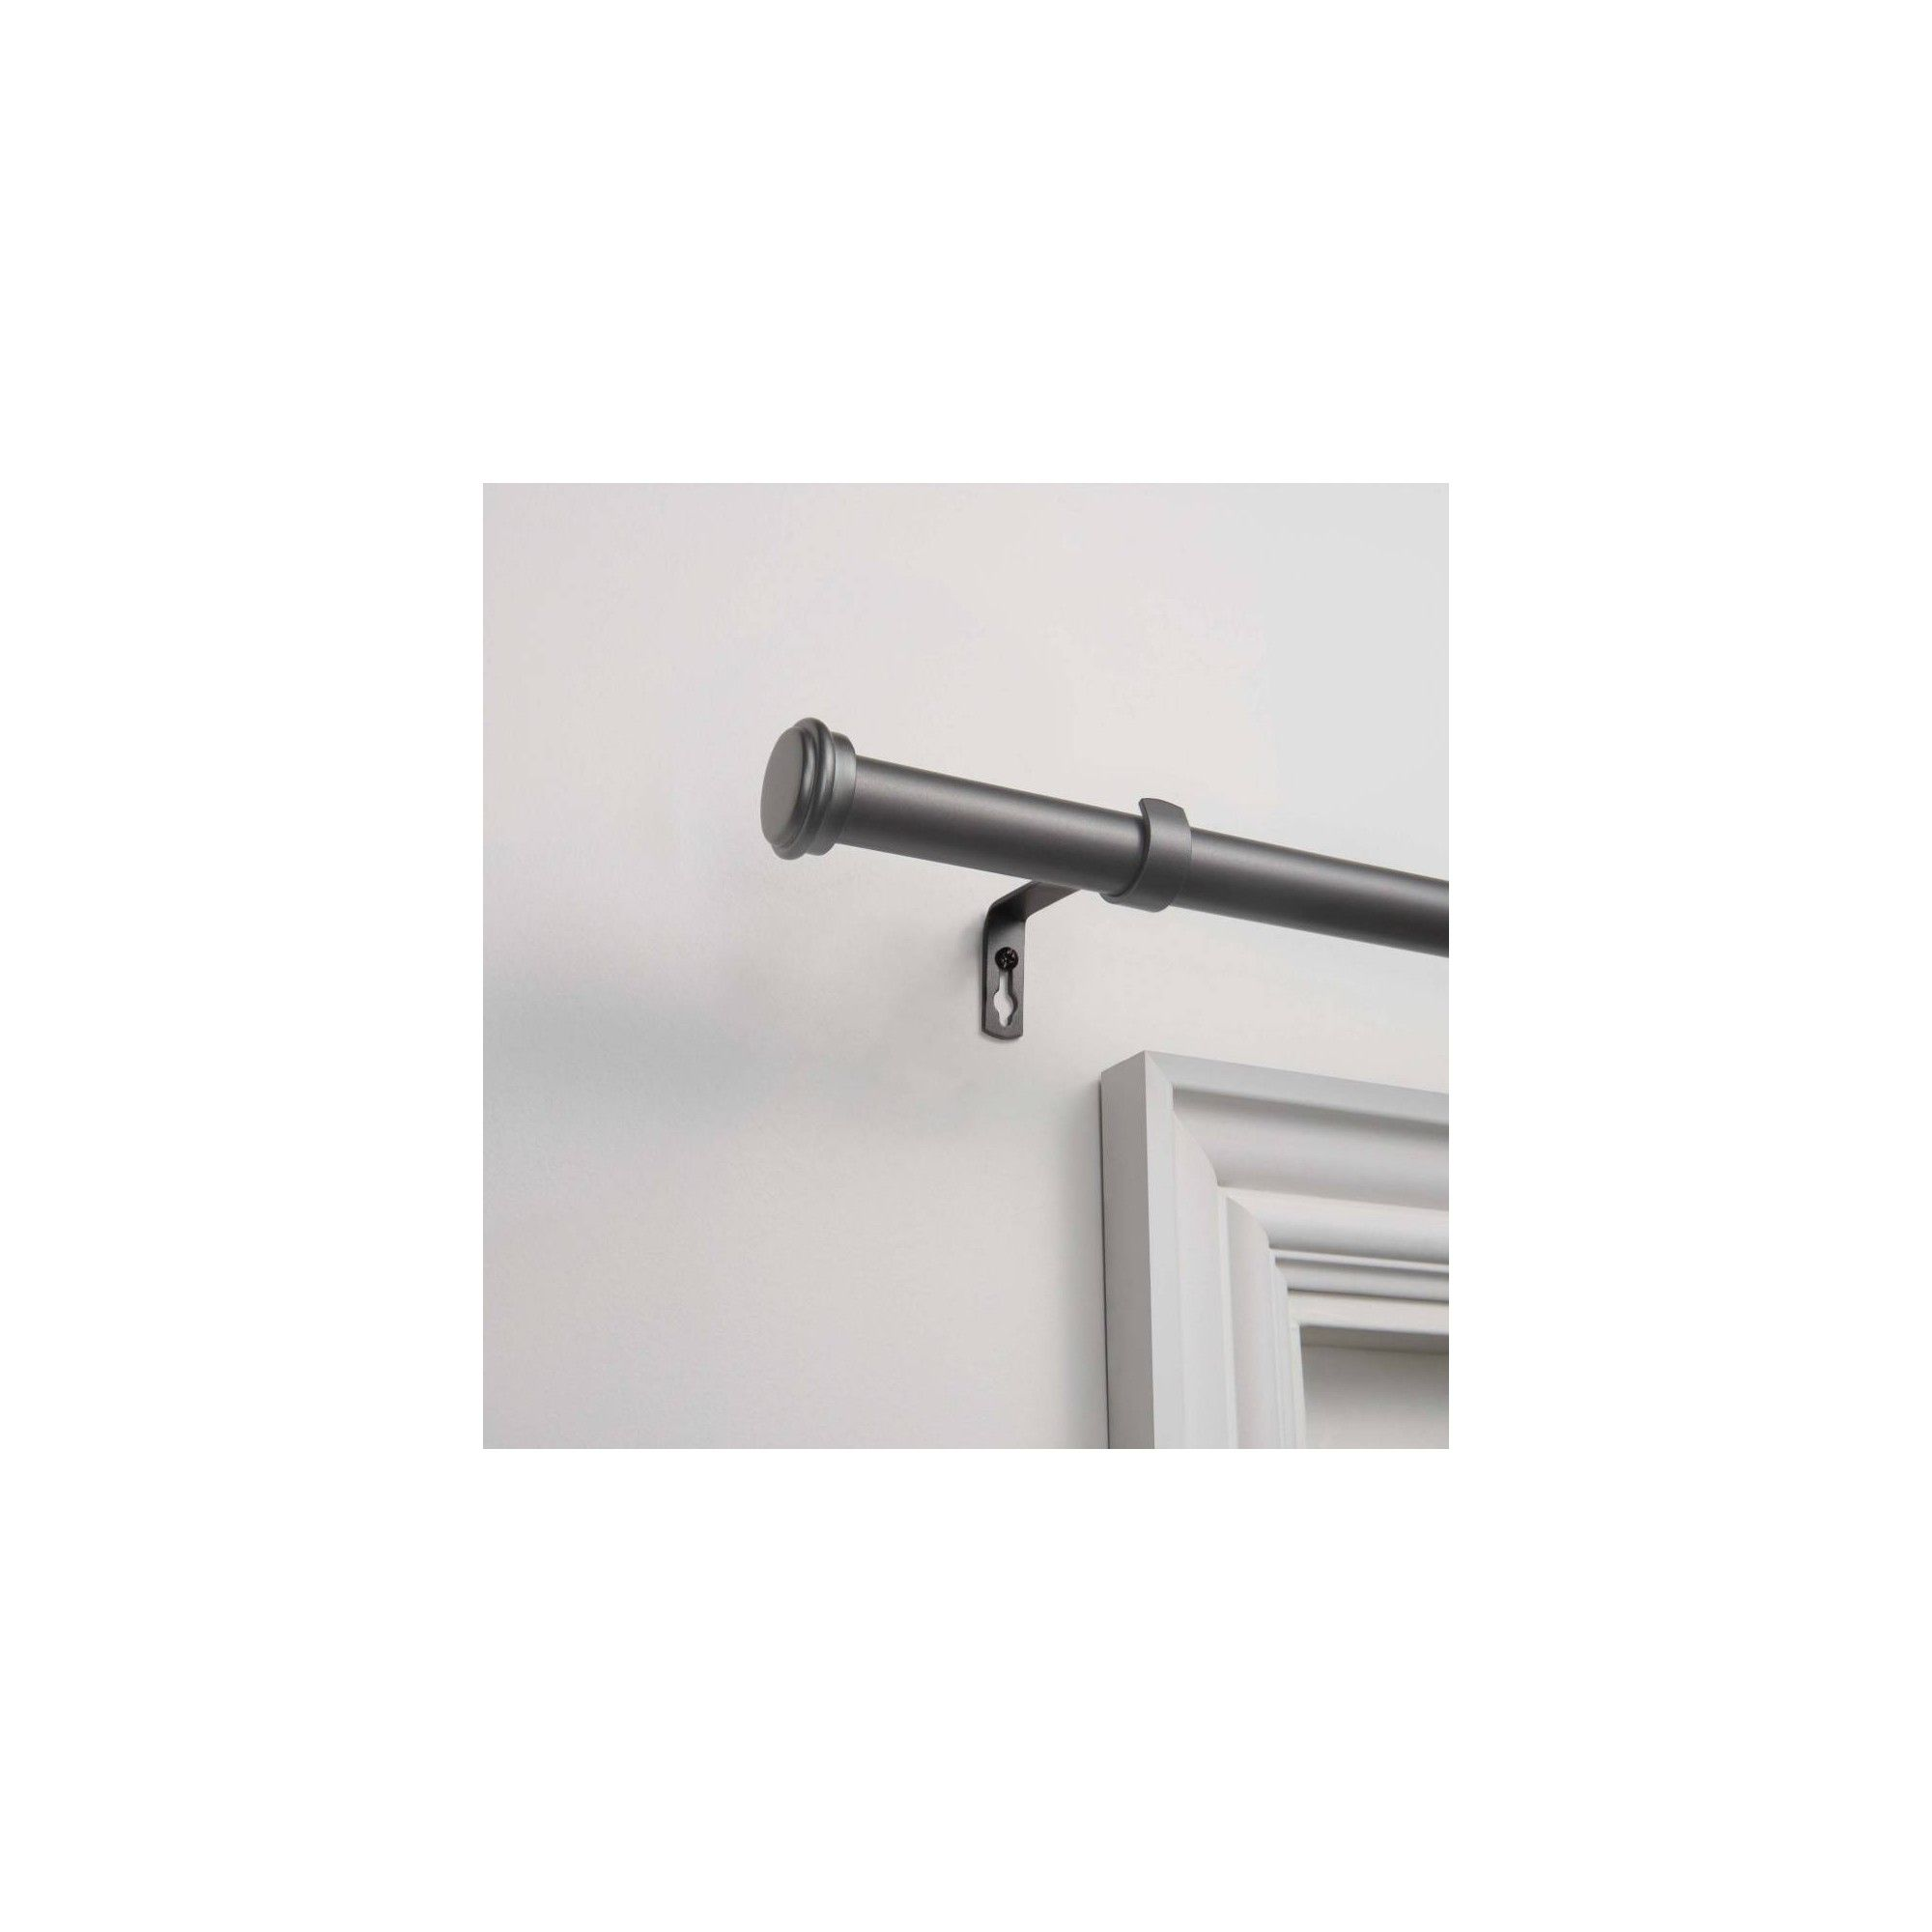 Topper 1 Curtain Rod And Coordinating Finial Set Matte Black